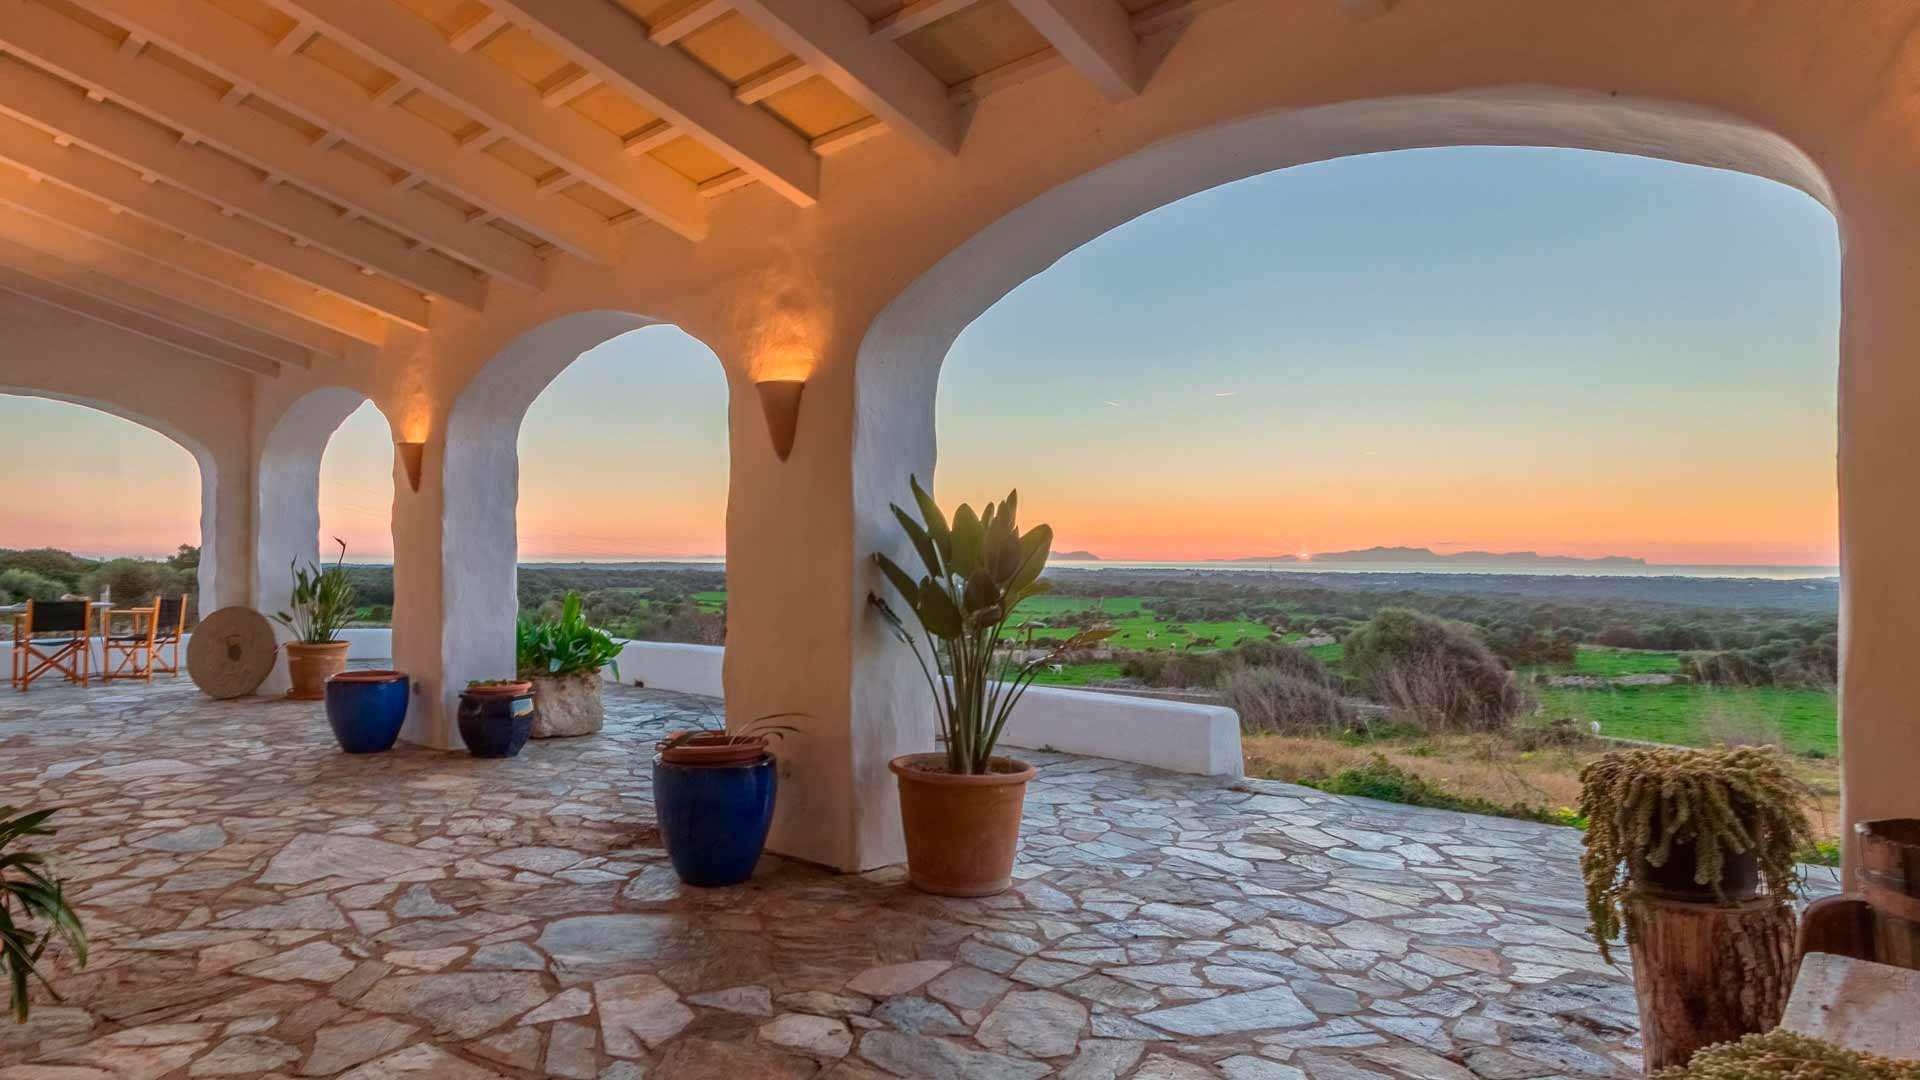 The property with the most sublime sunset